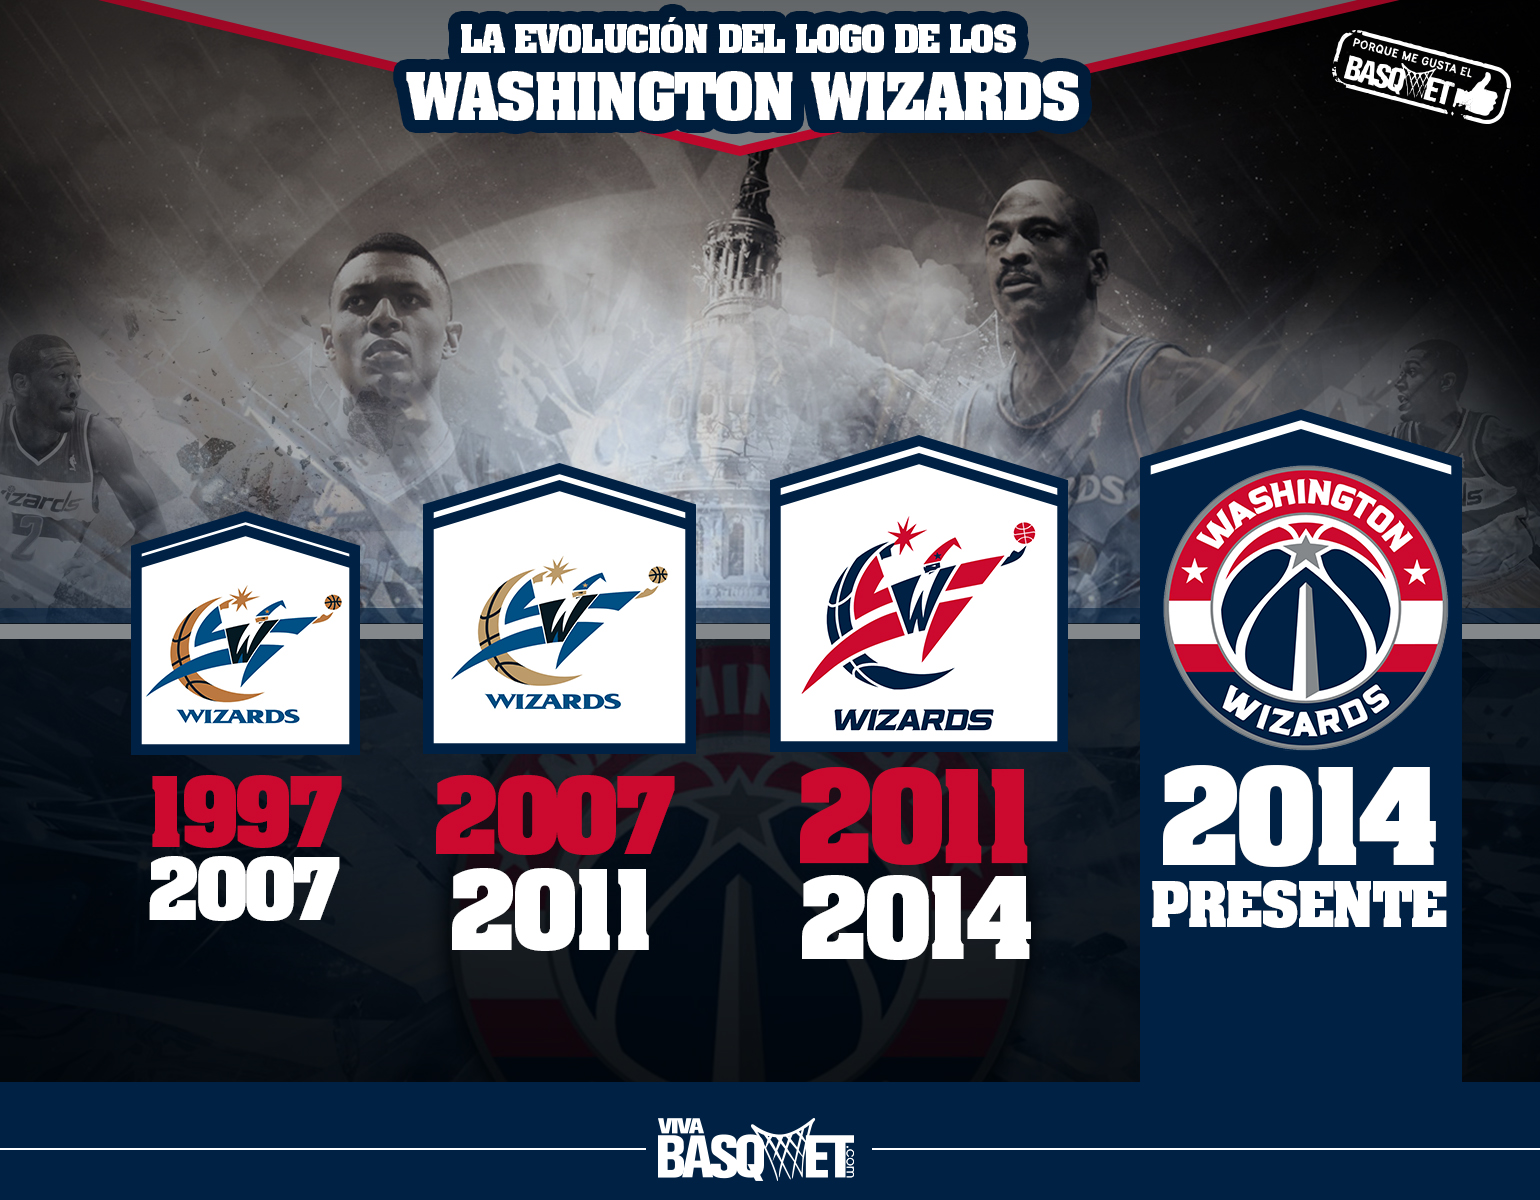 thumbnail La evolución del logo de los Washington Wizards por Viva Basquet.